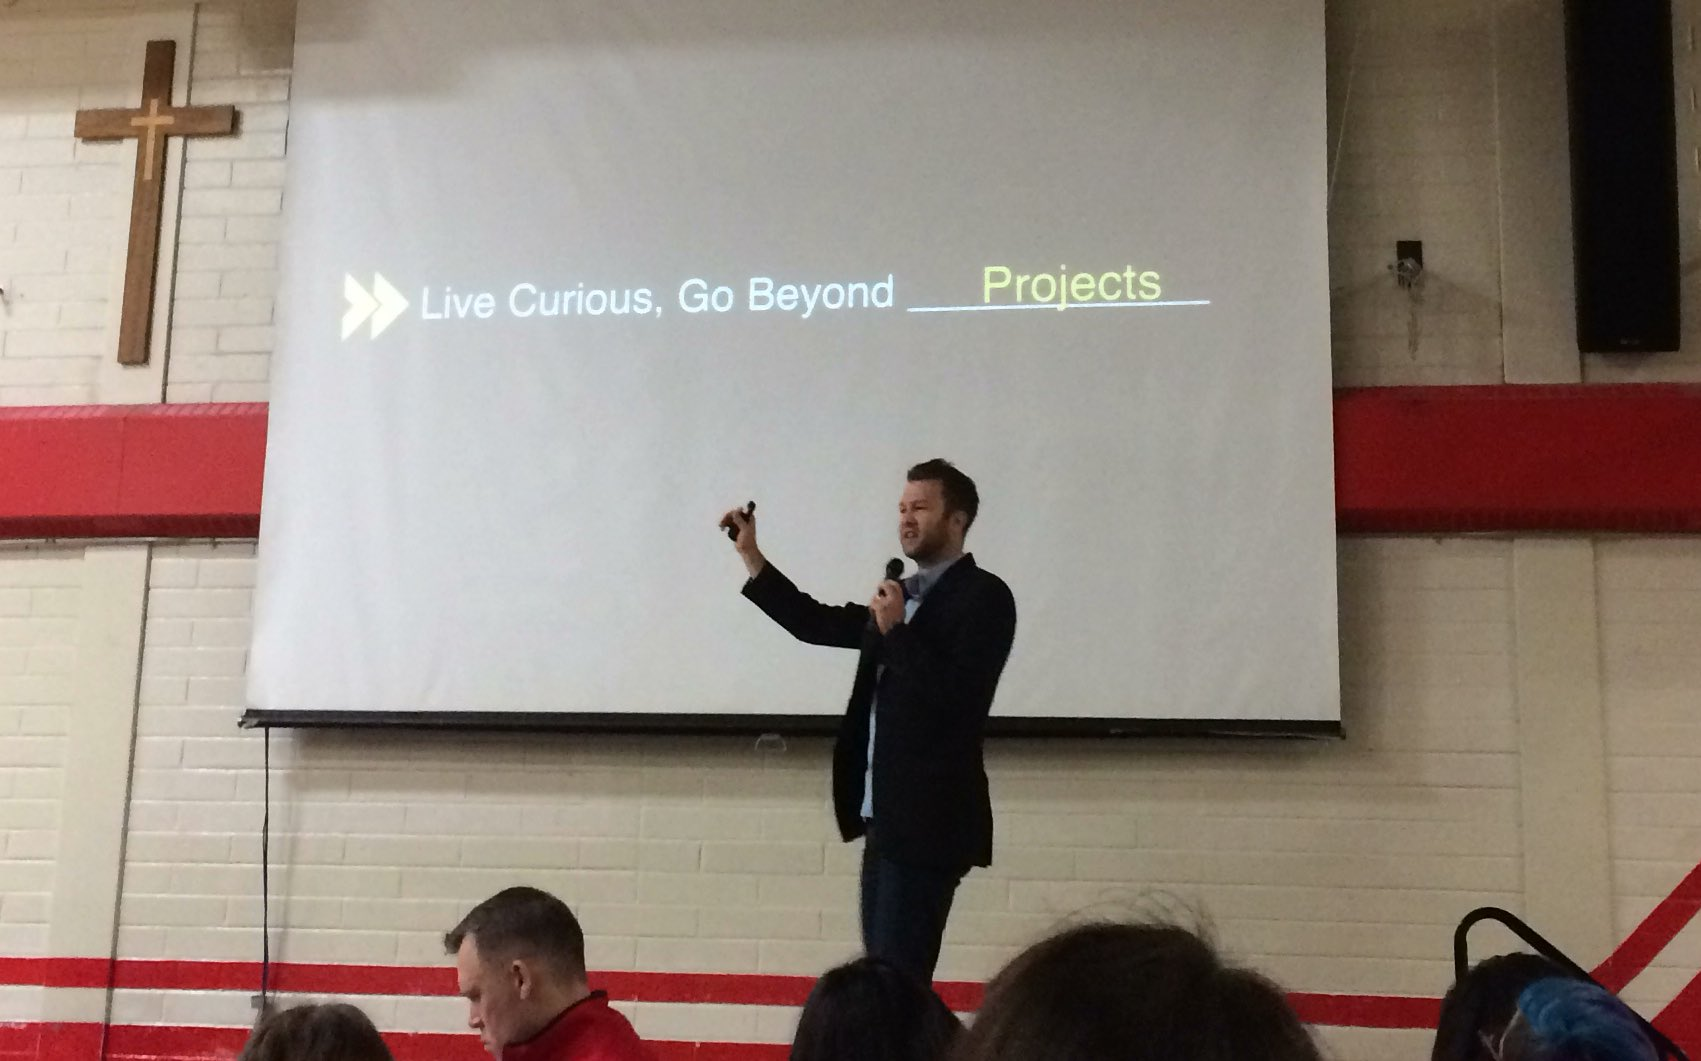 keynote speaker, @Hamm_Ed great talk about new ideas in education, integrating Google apps, inspirational! @edtechteam https://t.co/iT2qzb4GQX